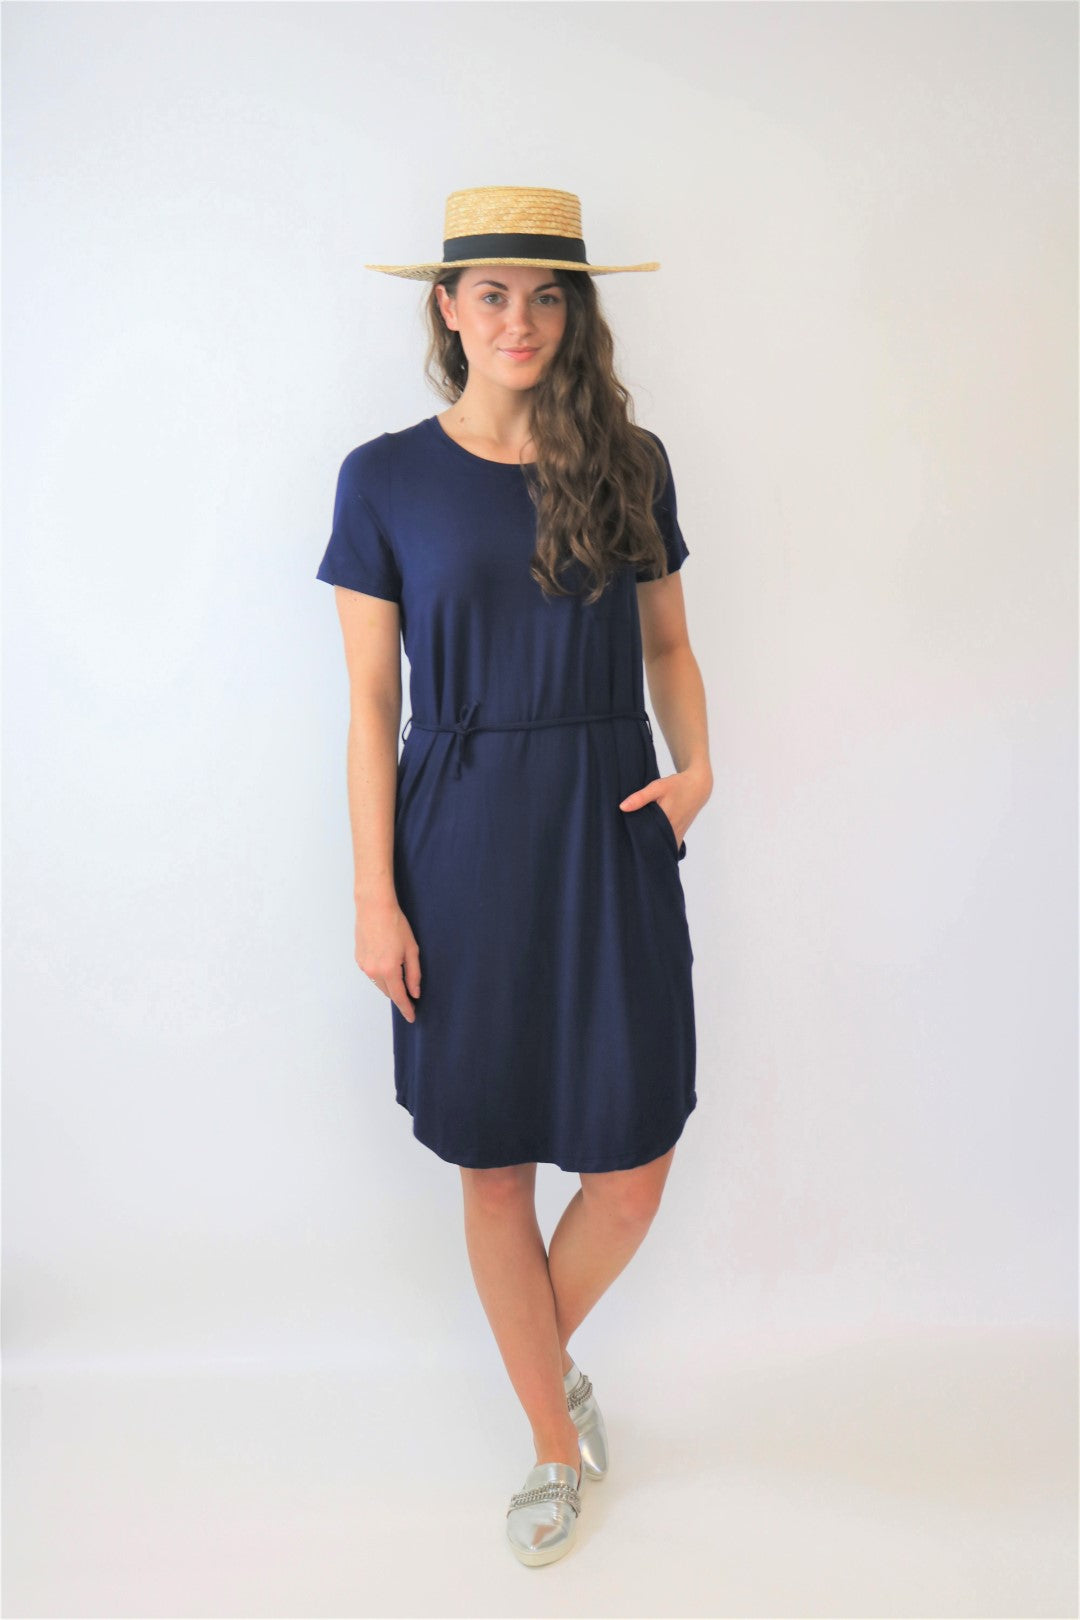 Bamboo Navy T-dress